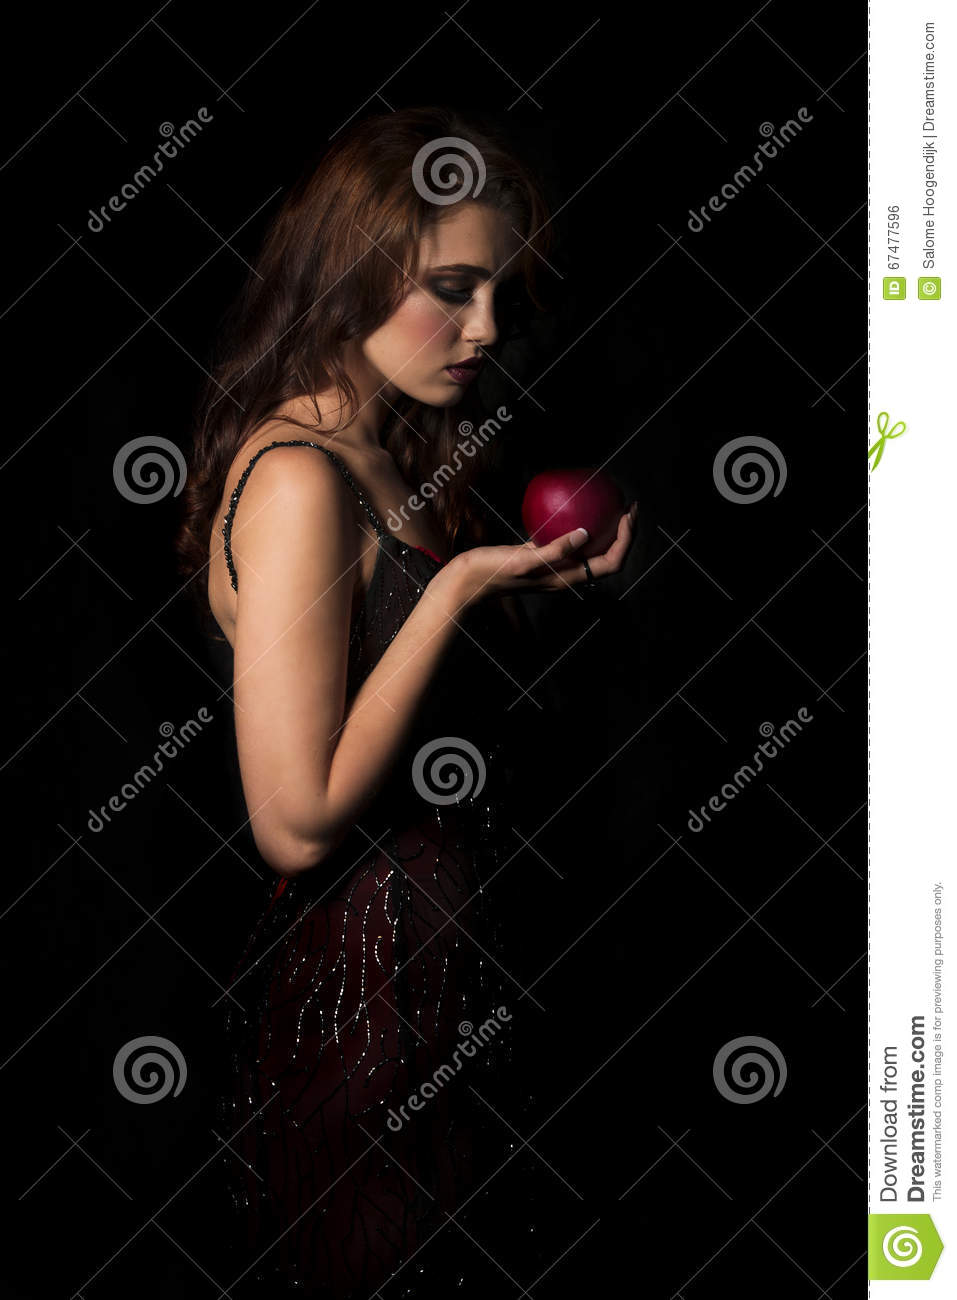 brunette woman with dark red dress looking down at red apple in her hand